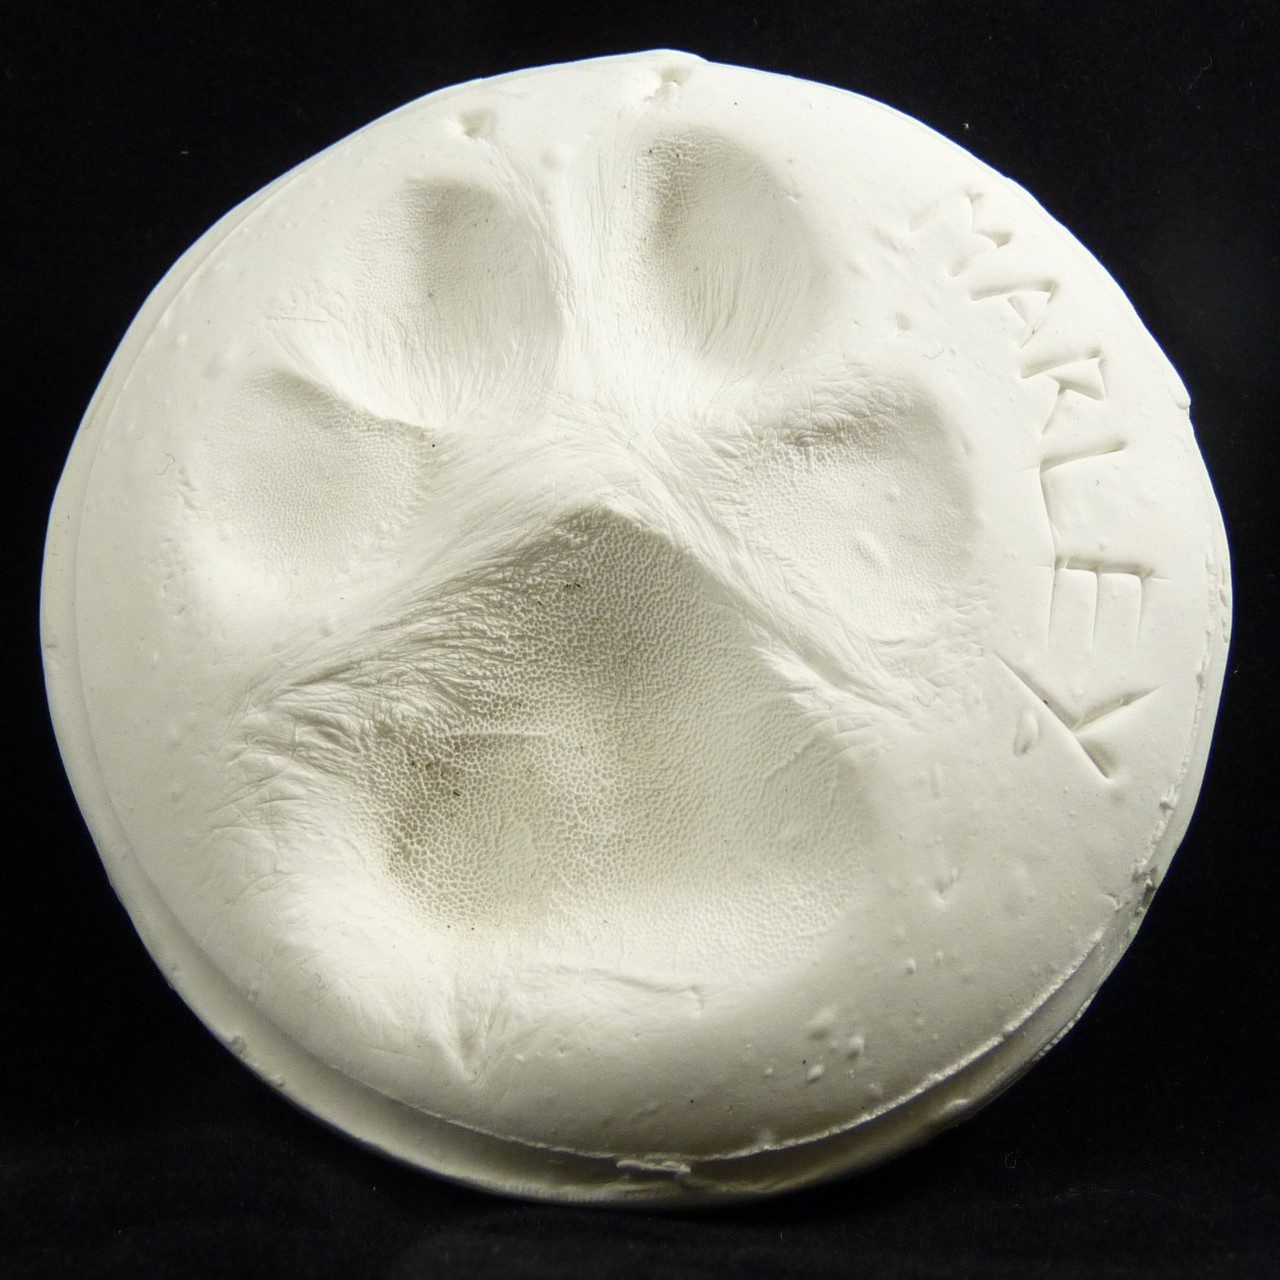 Hand, Foot and Paw Print Clay Impression Kit